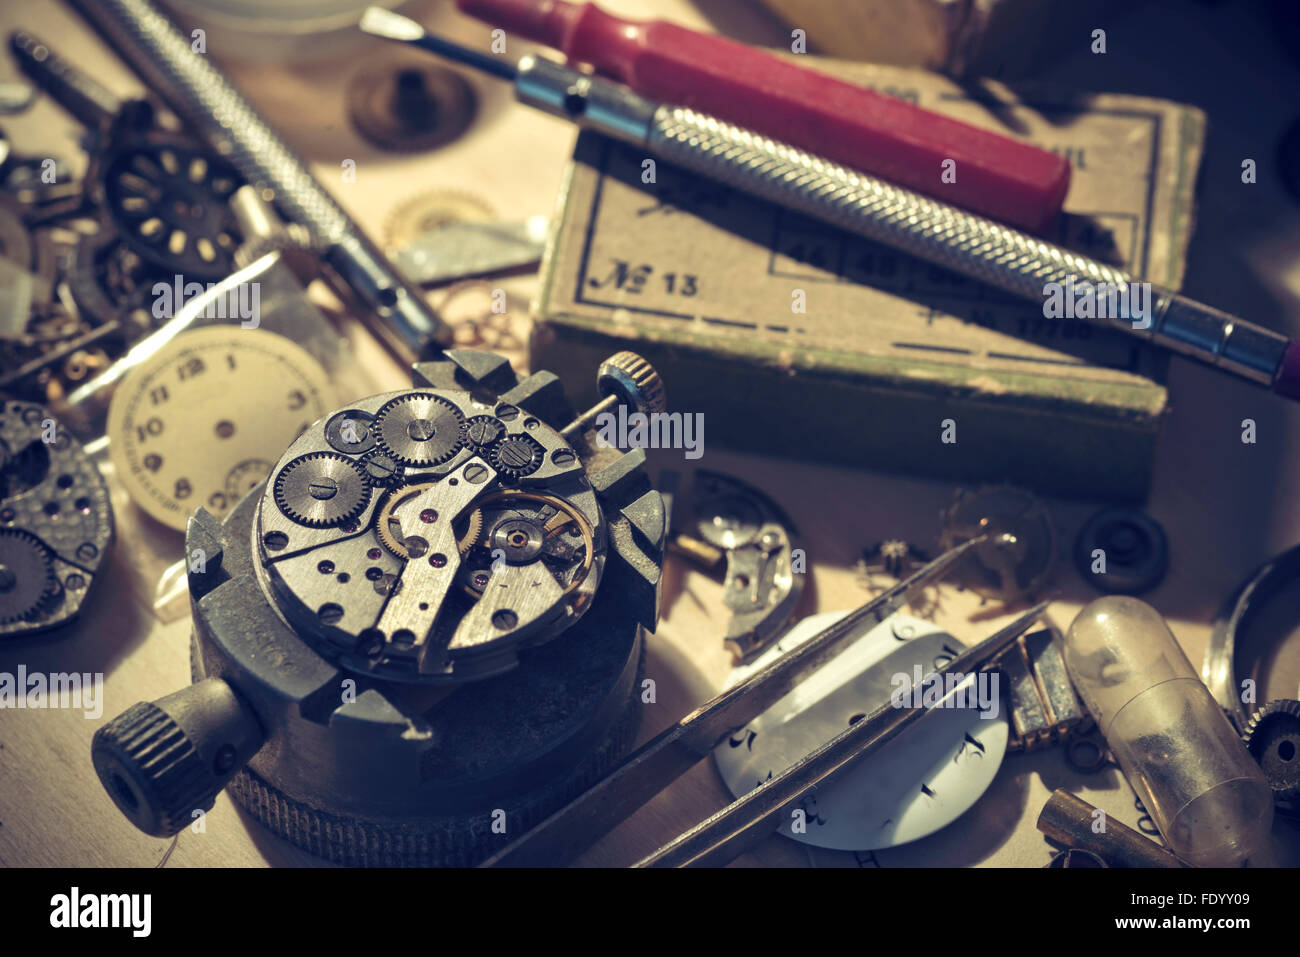 Old Watchmaker Studio. A watch makers work top. The inside workings of a vintage mechanical watch. - Stock Image